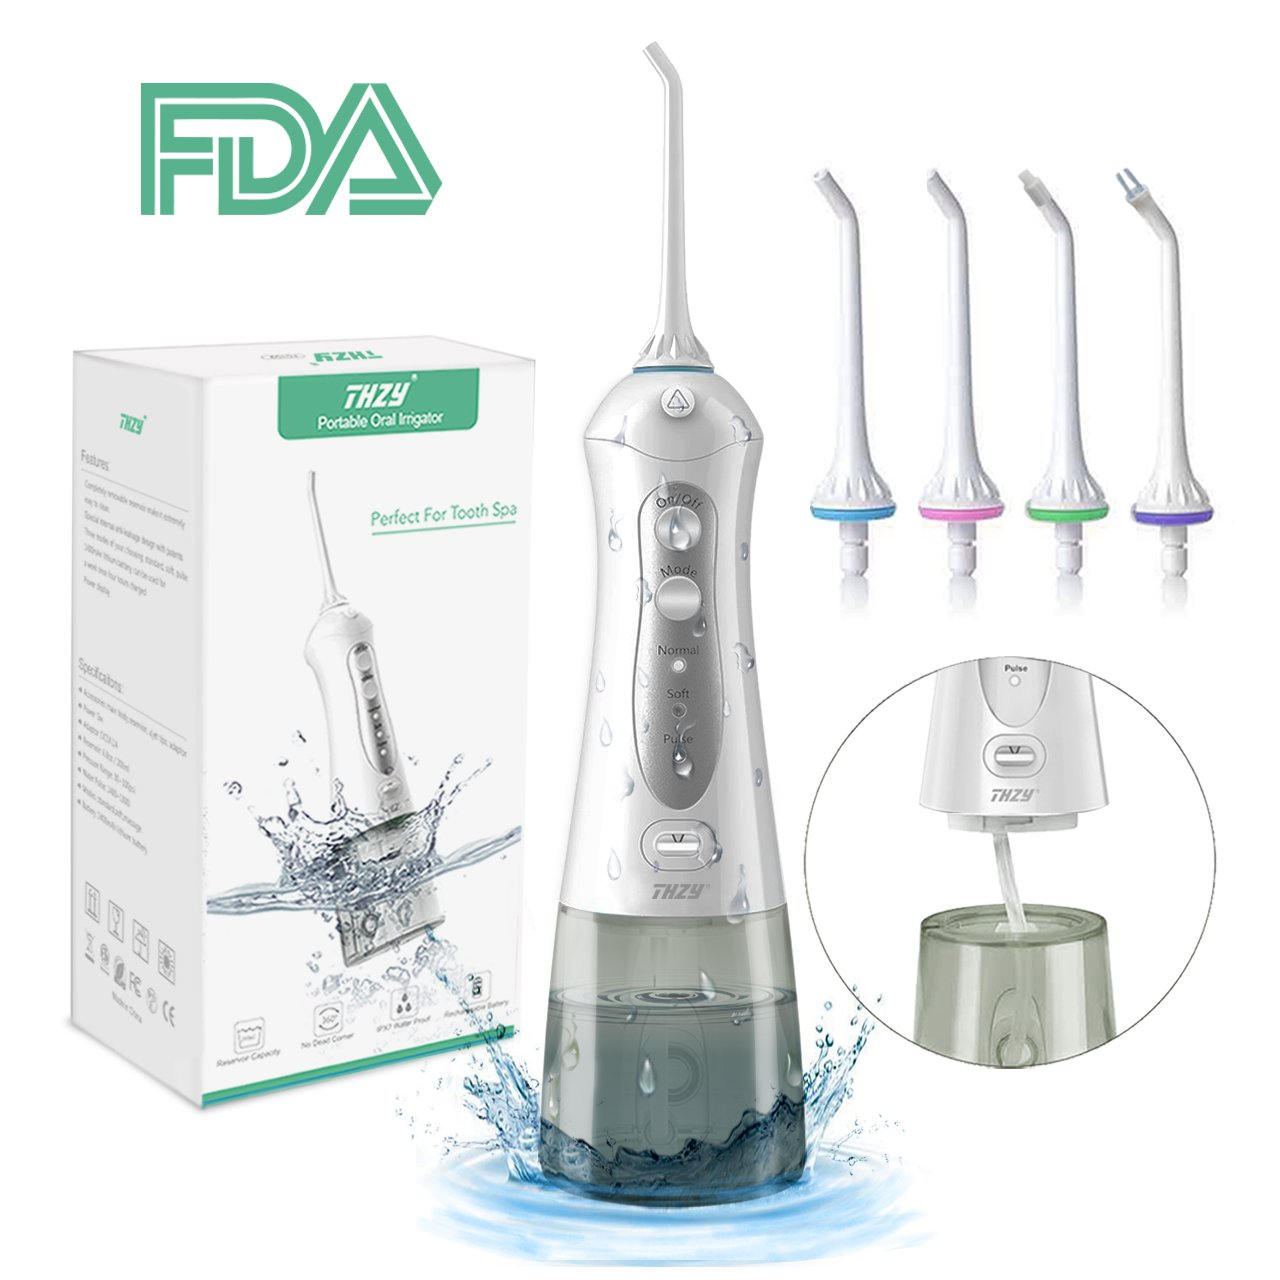 Cordless Water Flosser Oral Irrigator Upgraded IPX7 Waterproof 3-Mode USB Rechargable Professinal Portable Water Pick Dental Flosser with 4 Tips for Braces and Teeth Whitening